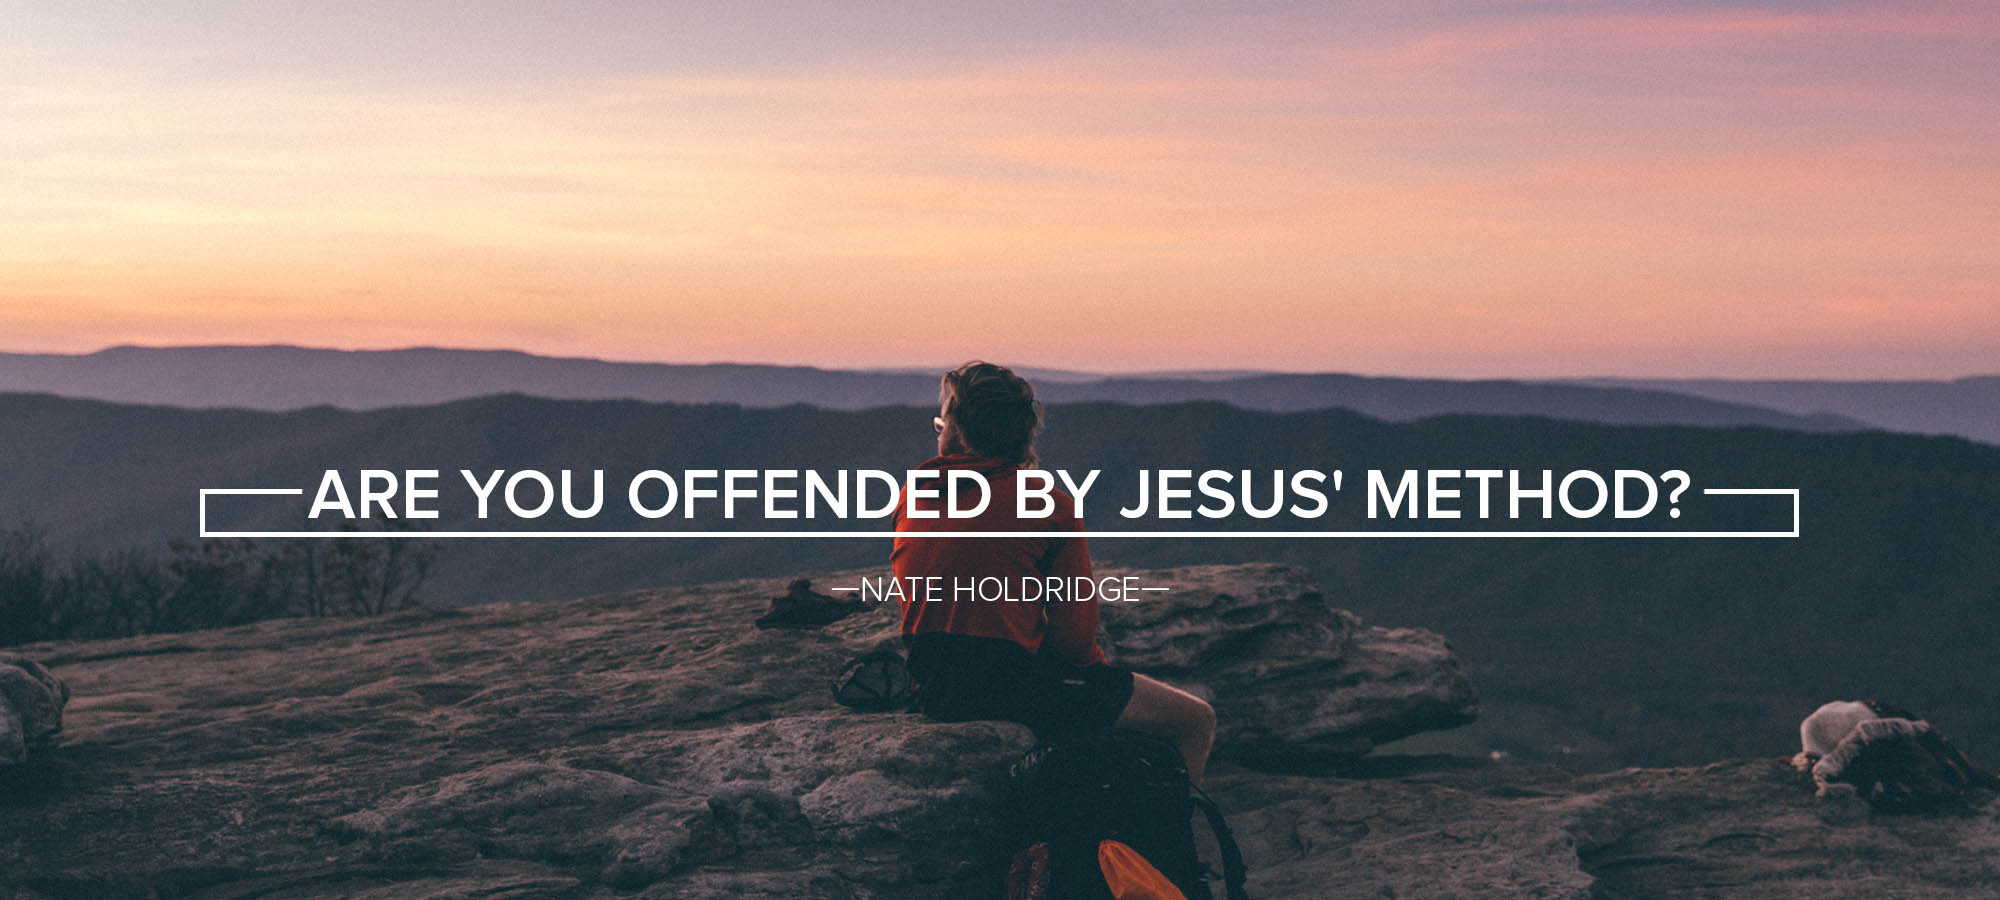 Are You Offended by Jesus' Method?